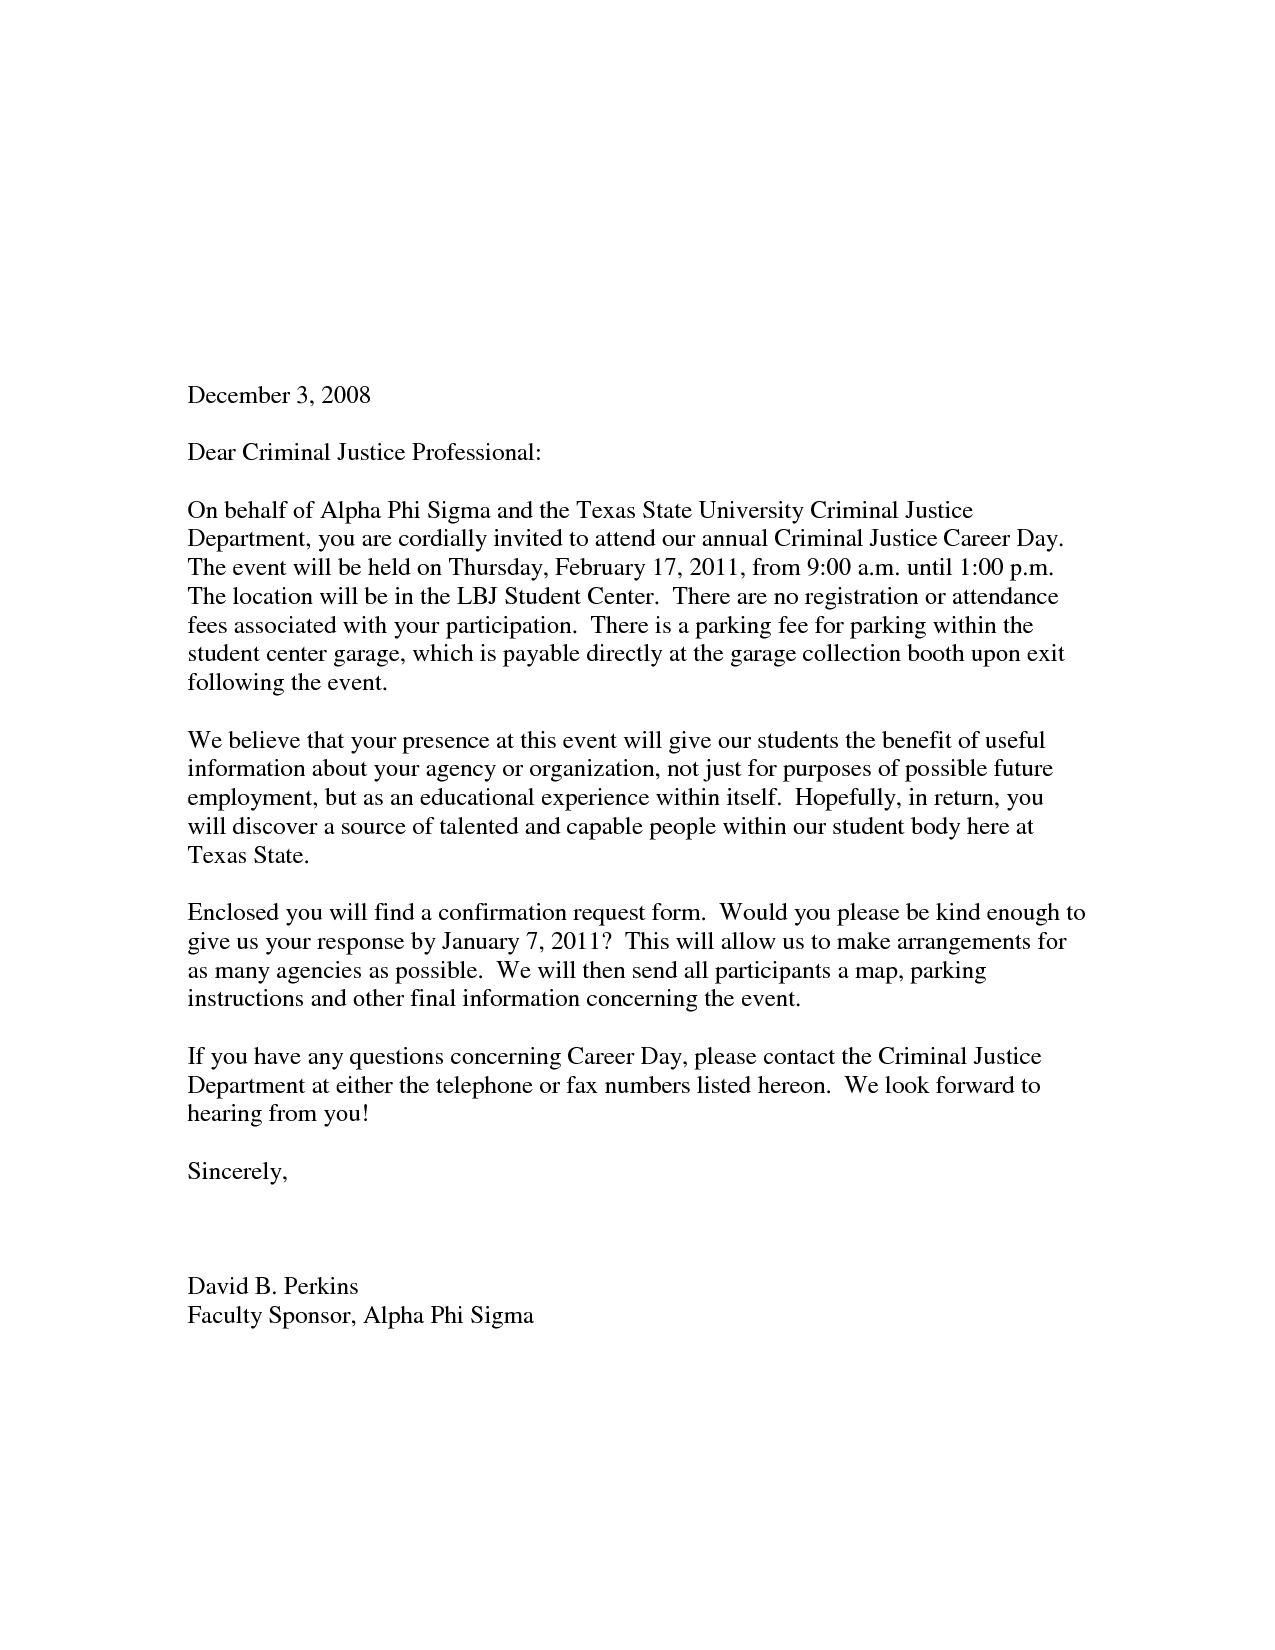 write a formal business invitation letter